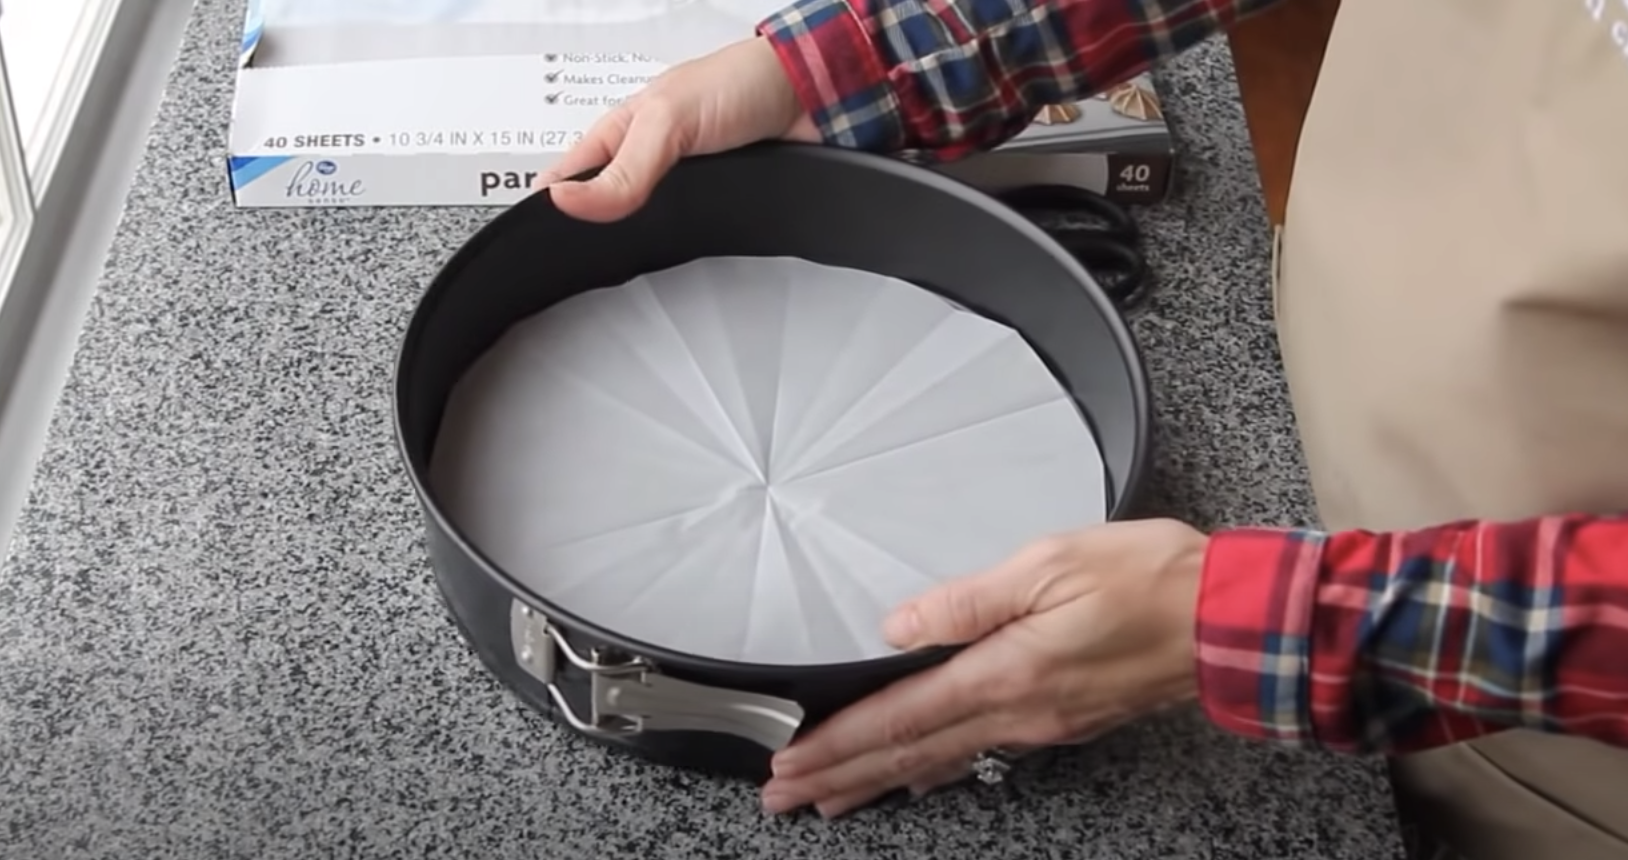 A person lining their cake tin with some parchment paper